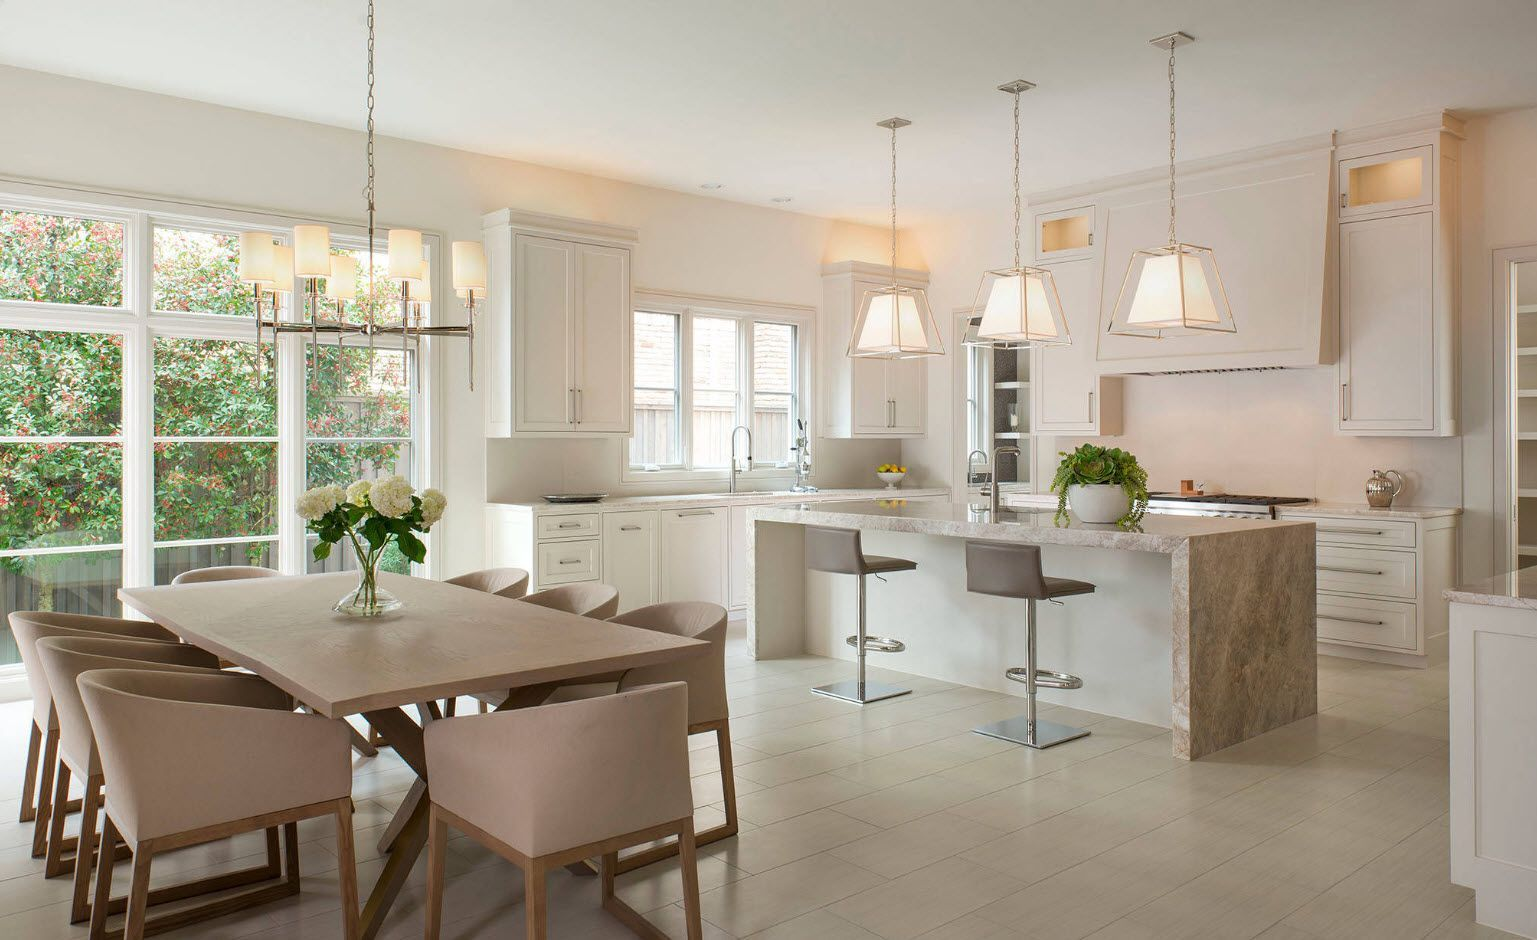 Nice design for the modern suburb house in the creamy gray and pastel color palette